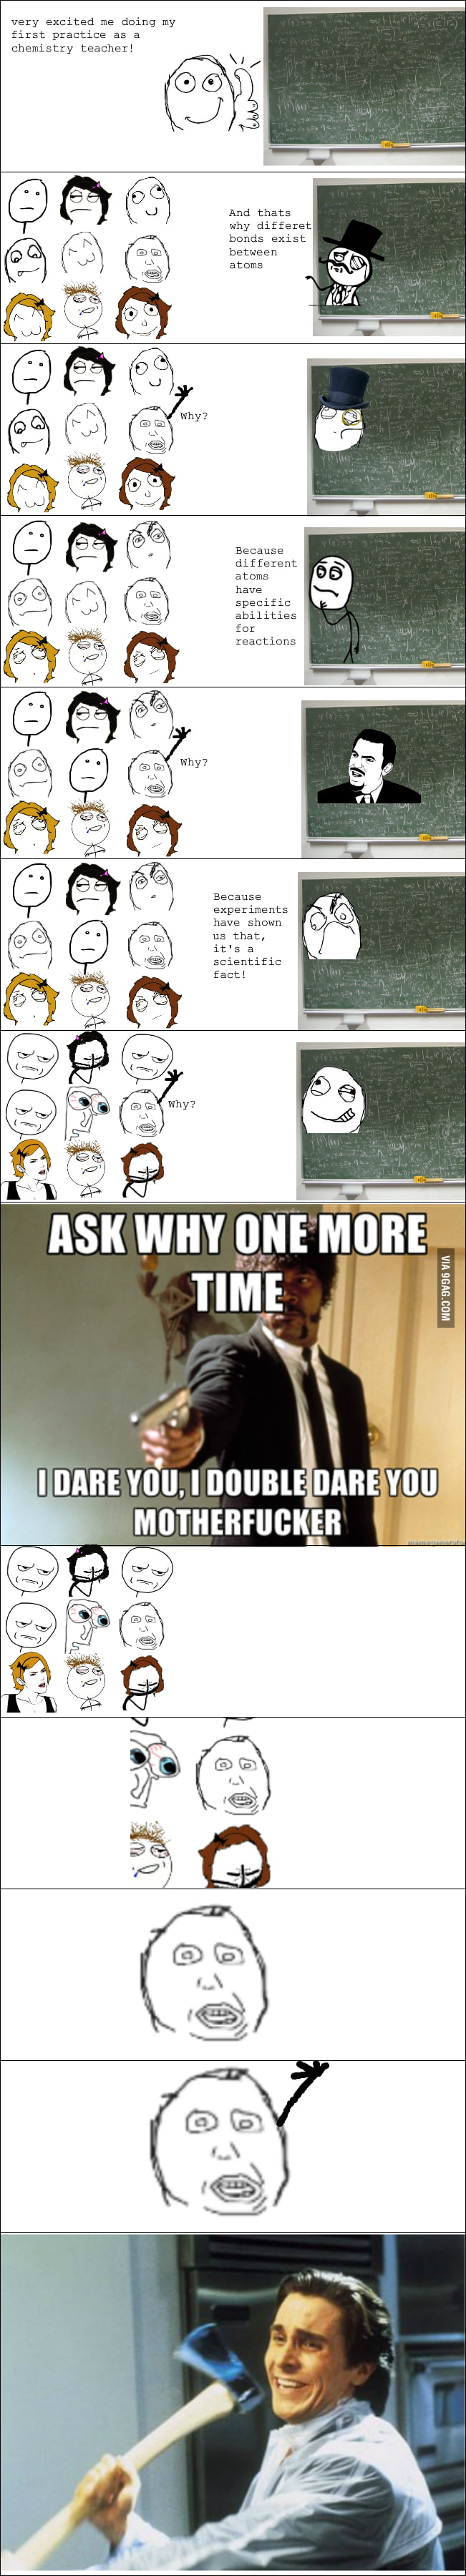 Working as a teacher, this is irritating!